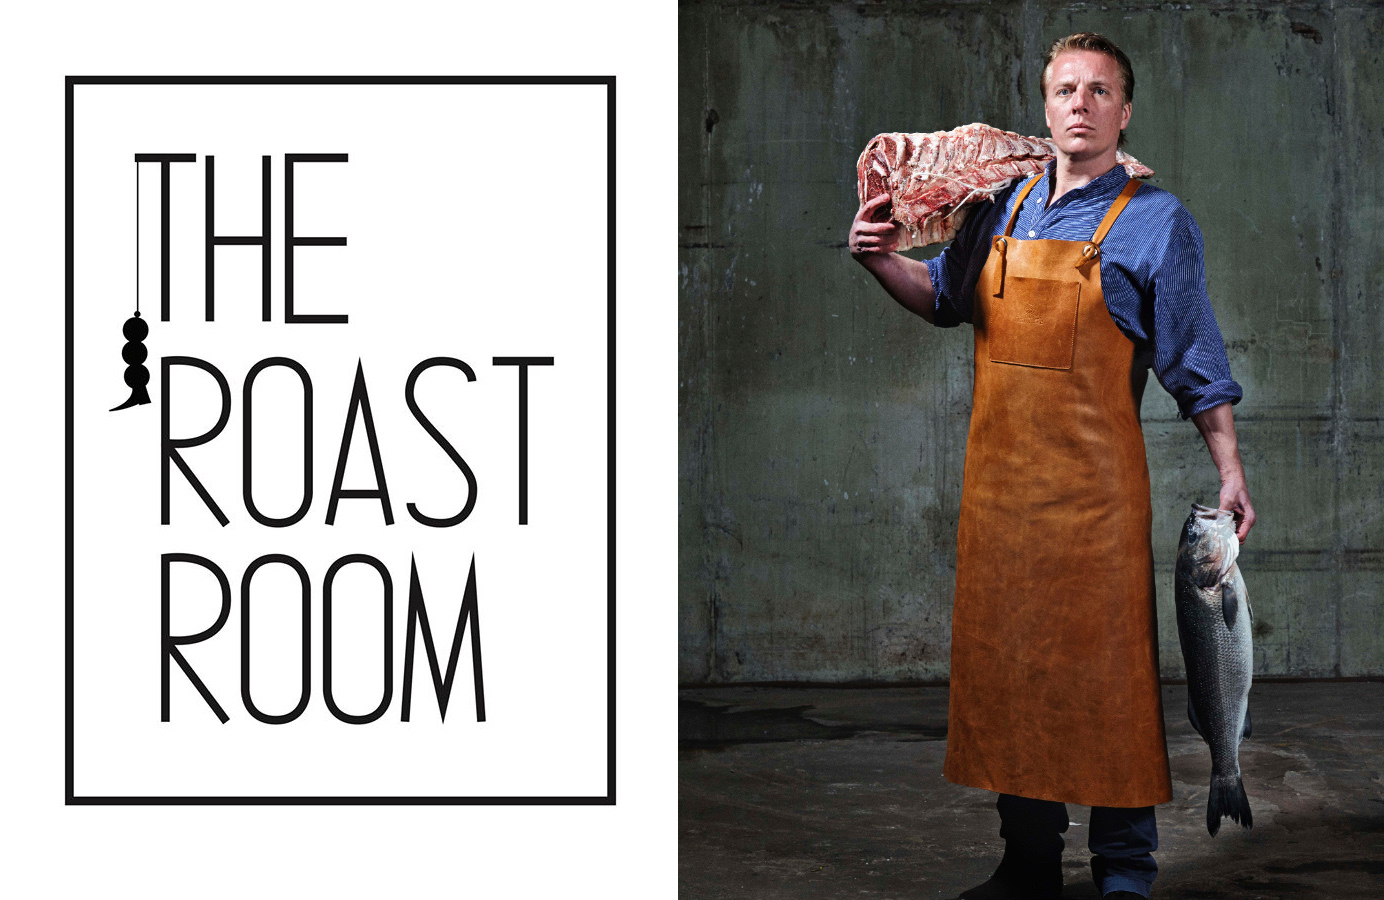 The Roast Room - Daily Cappuccino - Lifestyle Blog